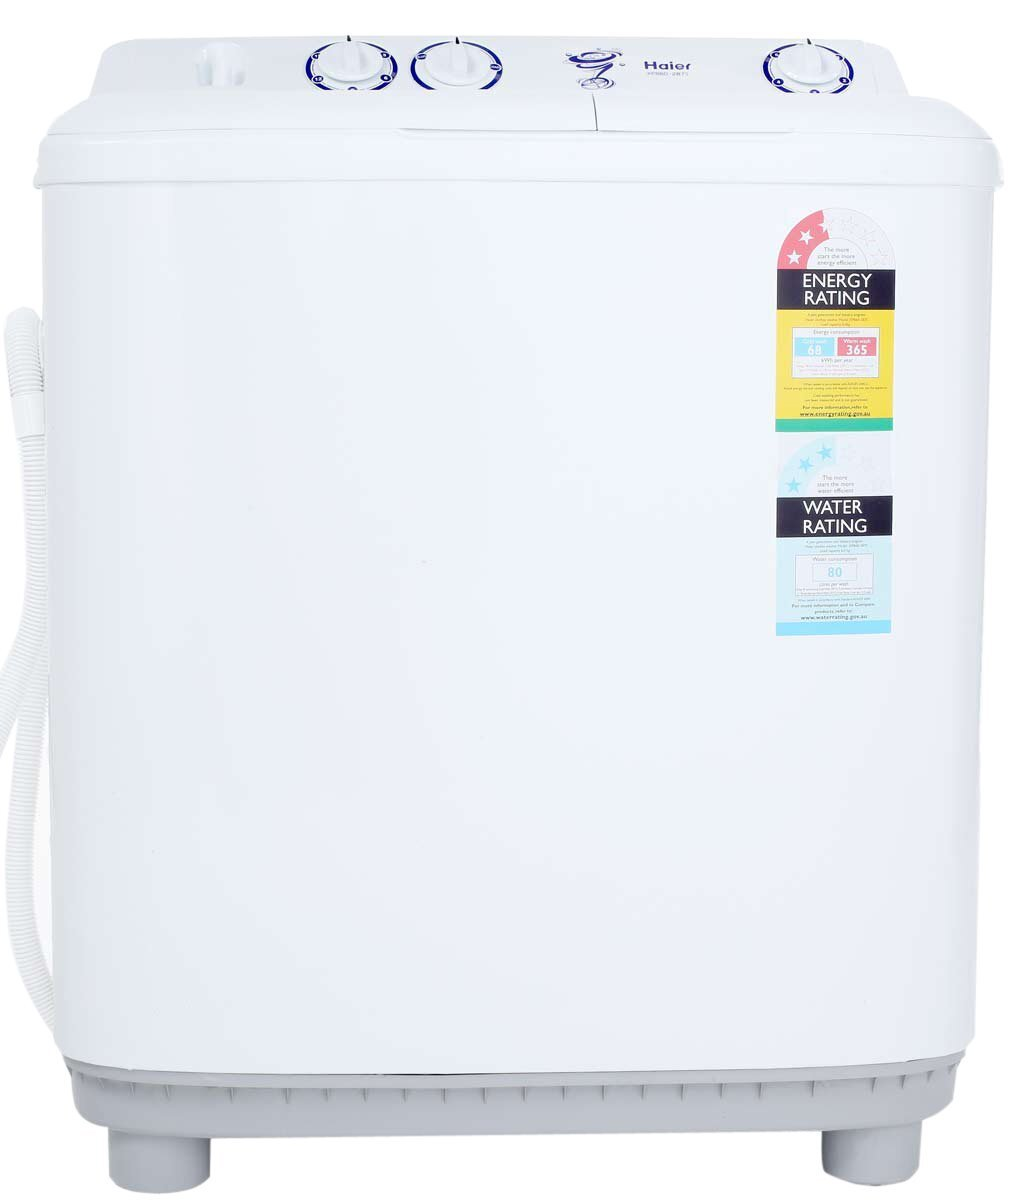 4: One of the Easiest to Use: Haier 6KG Twin Tub Top Load Washer